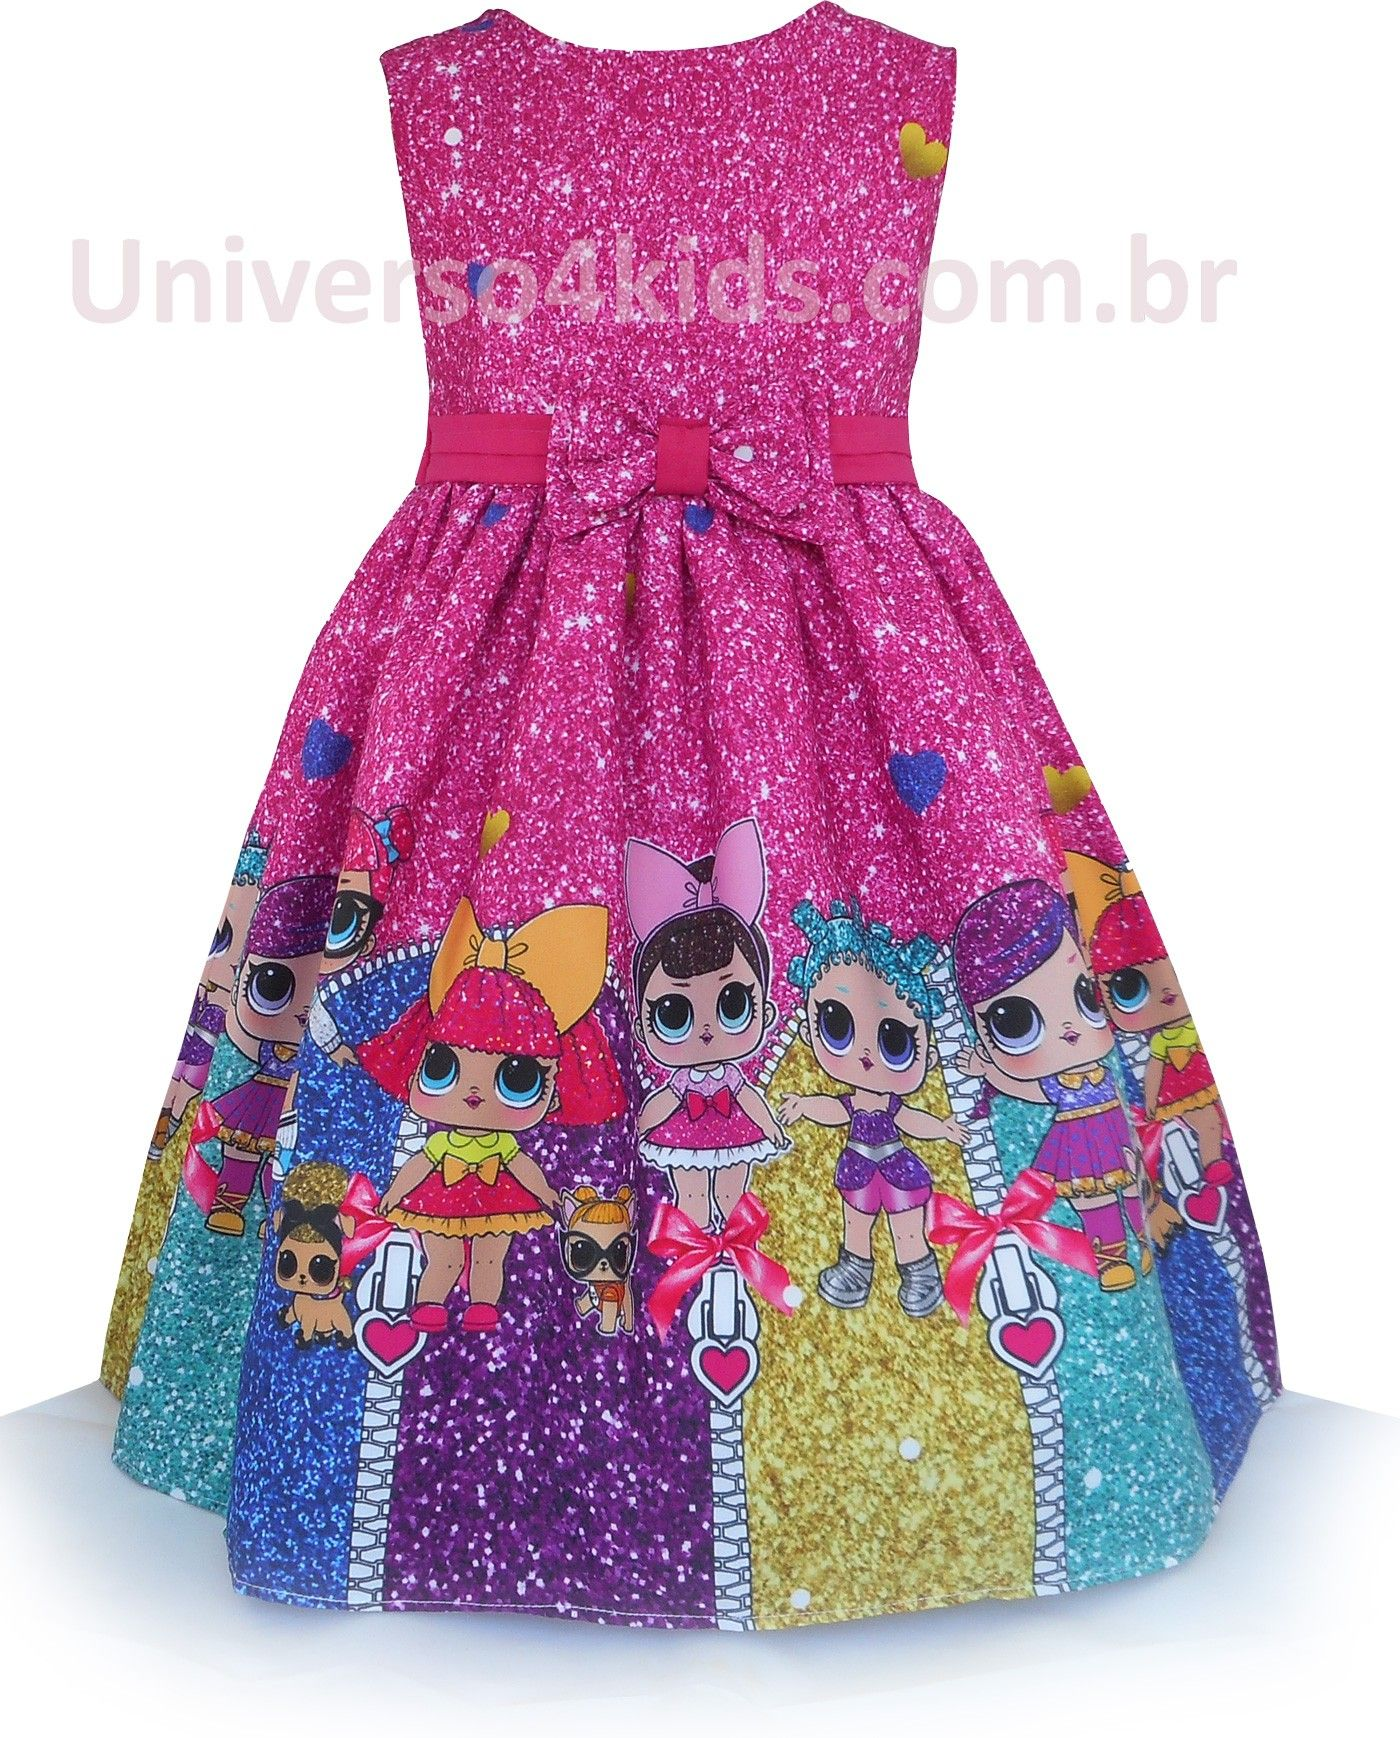 Pin By Luis Gonzalez Orasma On Vestidos Para Niñas In 2019